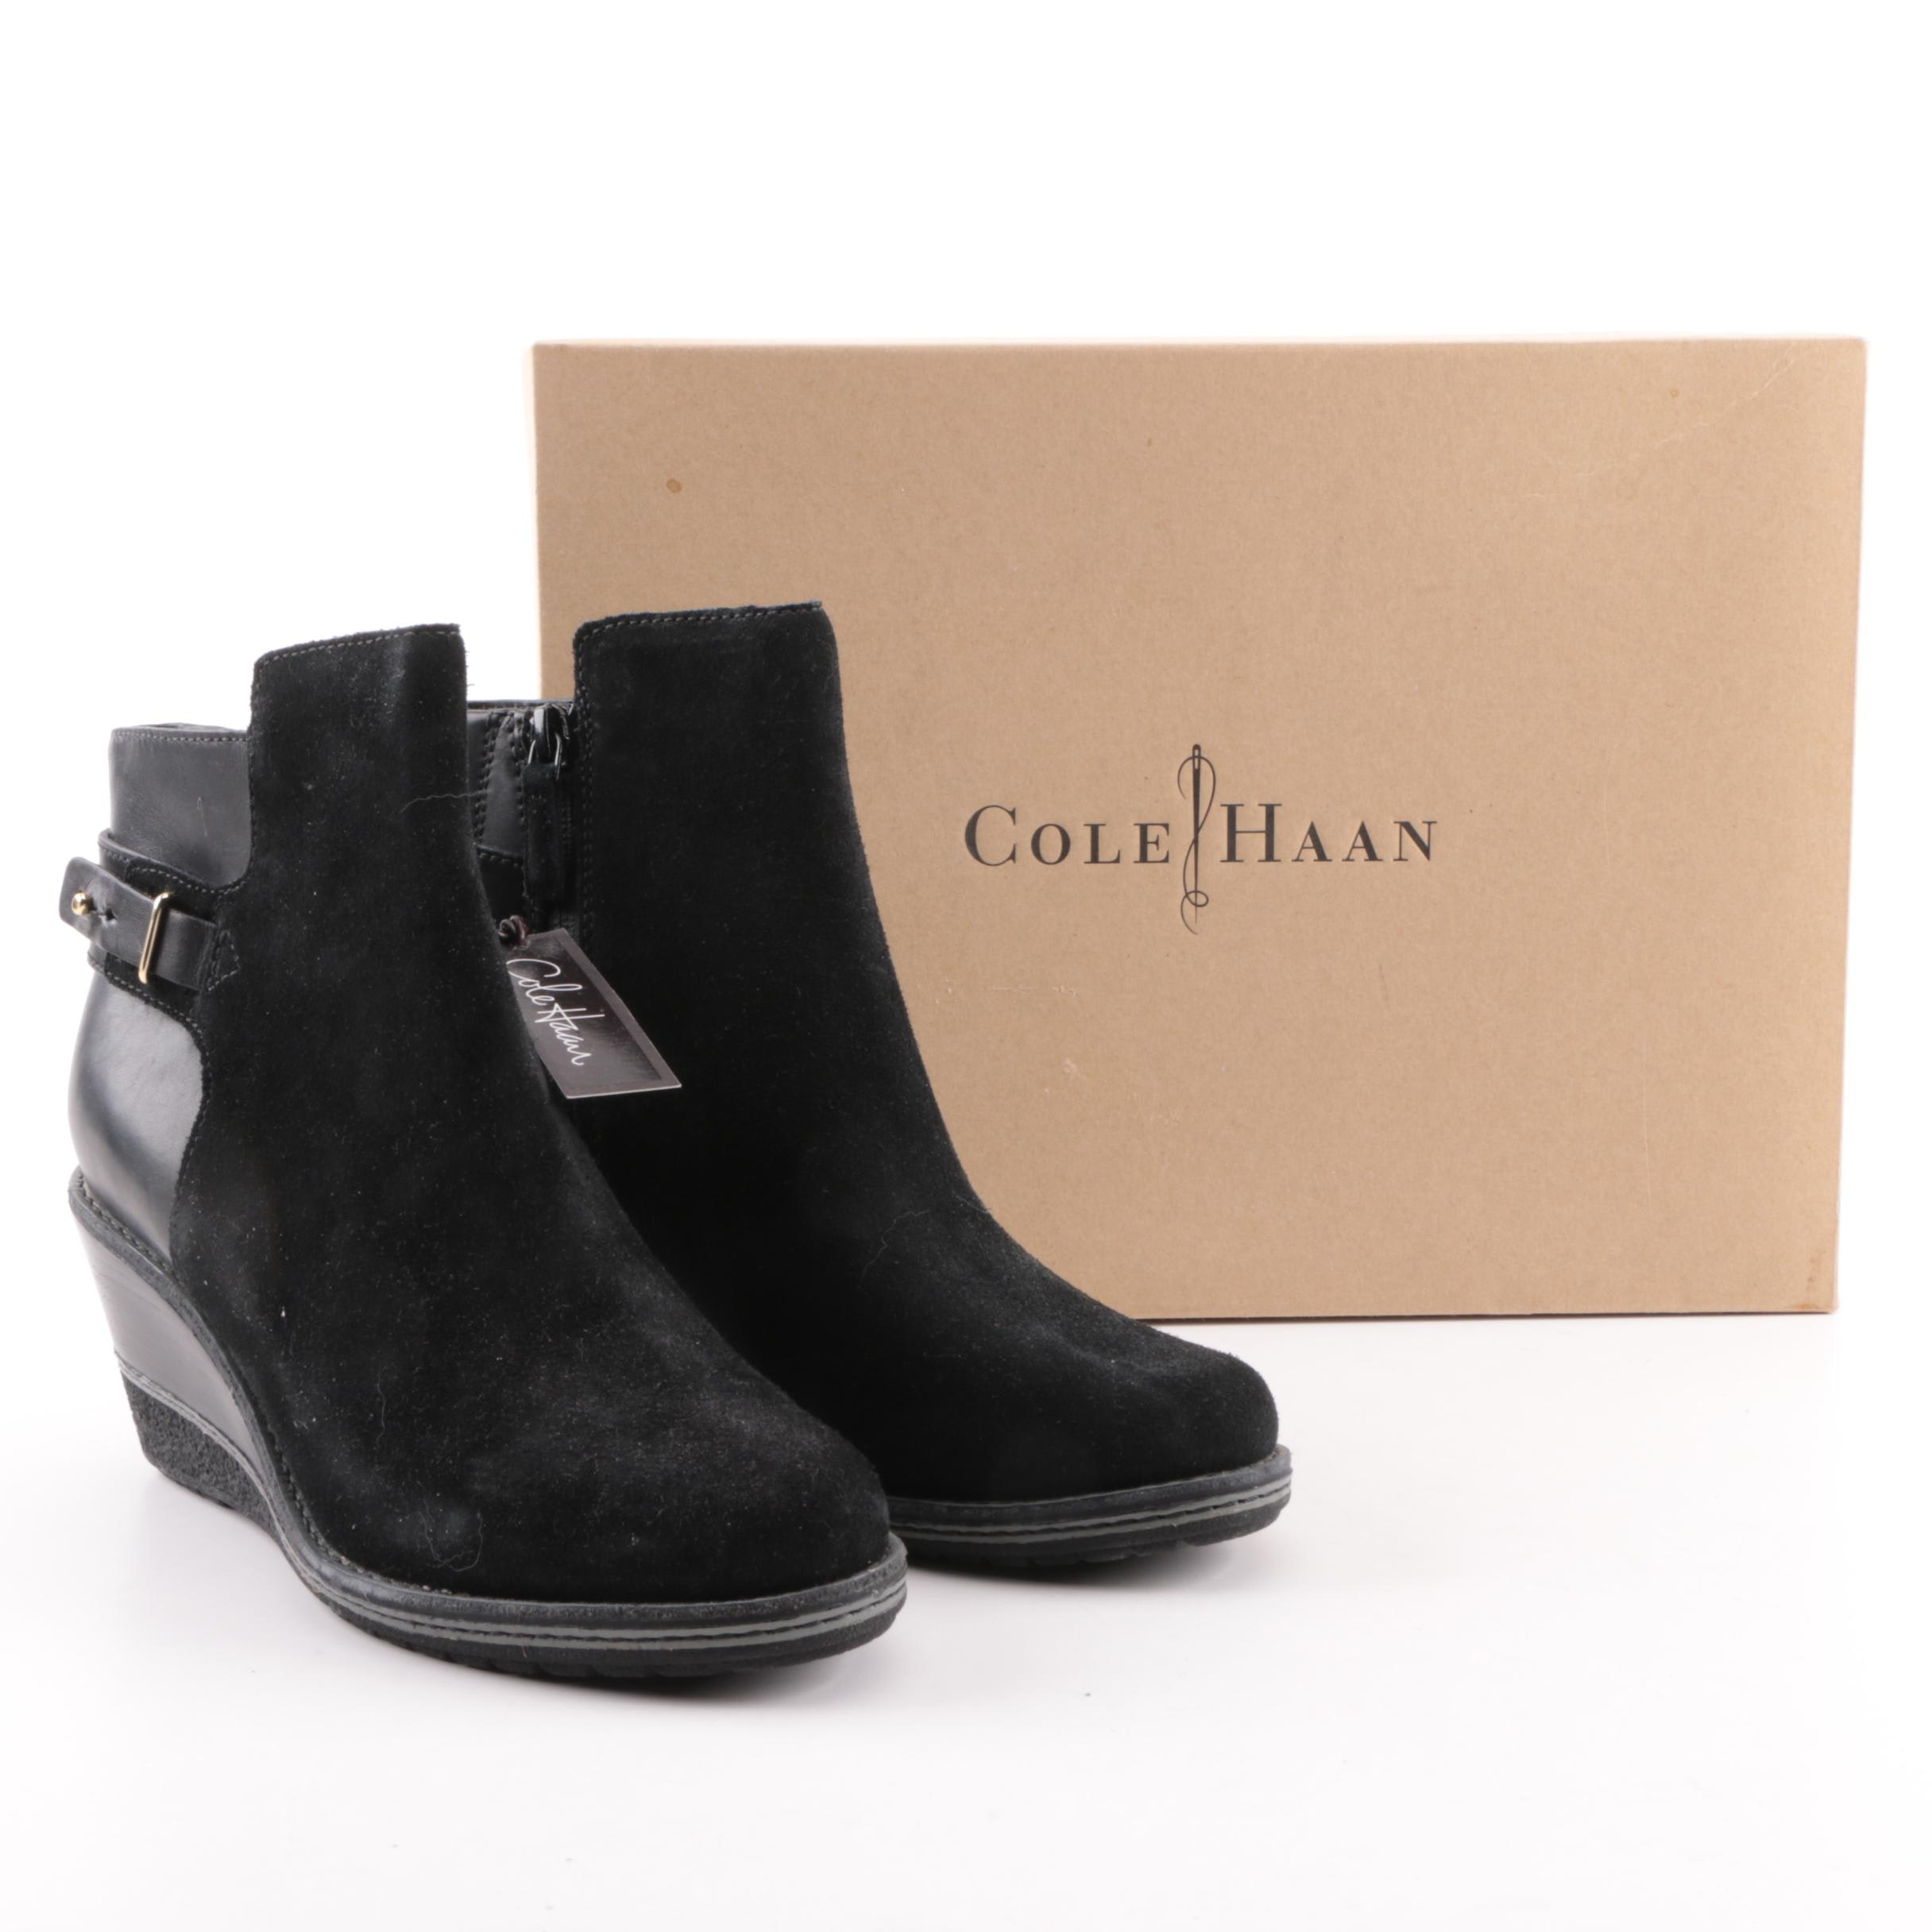 Women's Cole Haan Rayna Waterproof Black Suede and Leather Wedge Ankle Boots